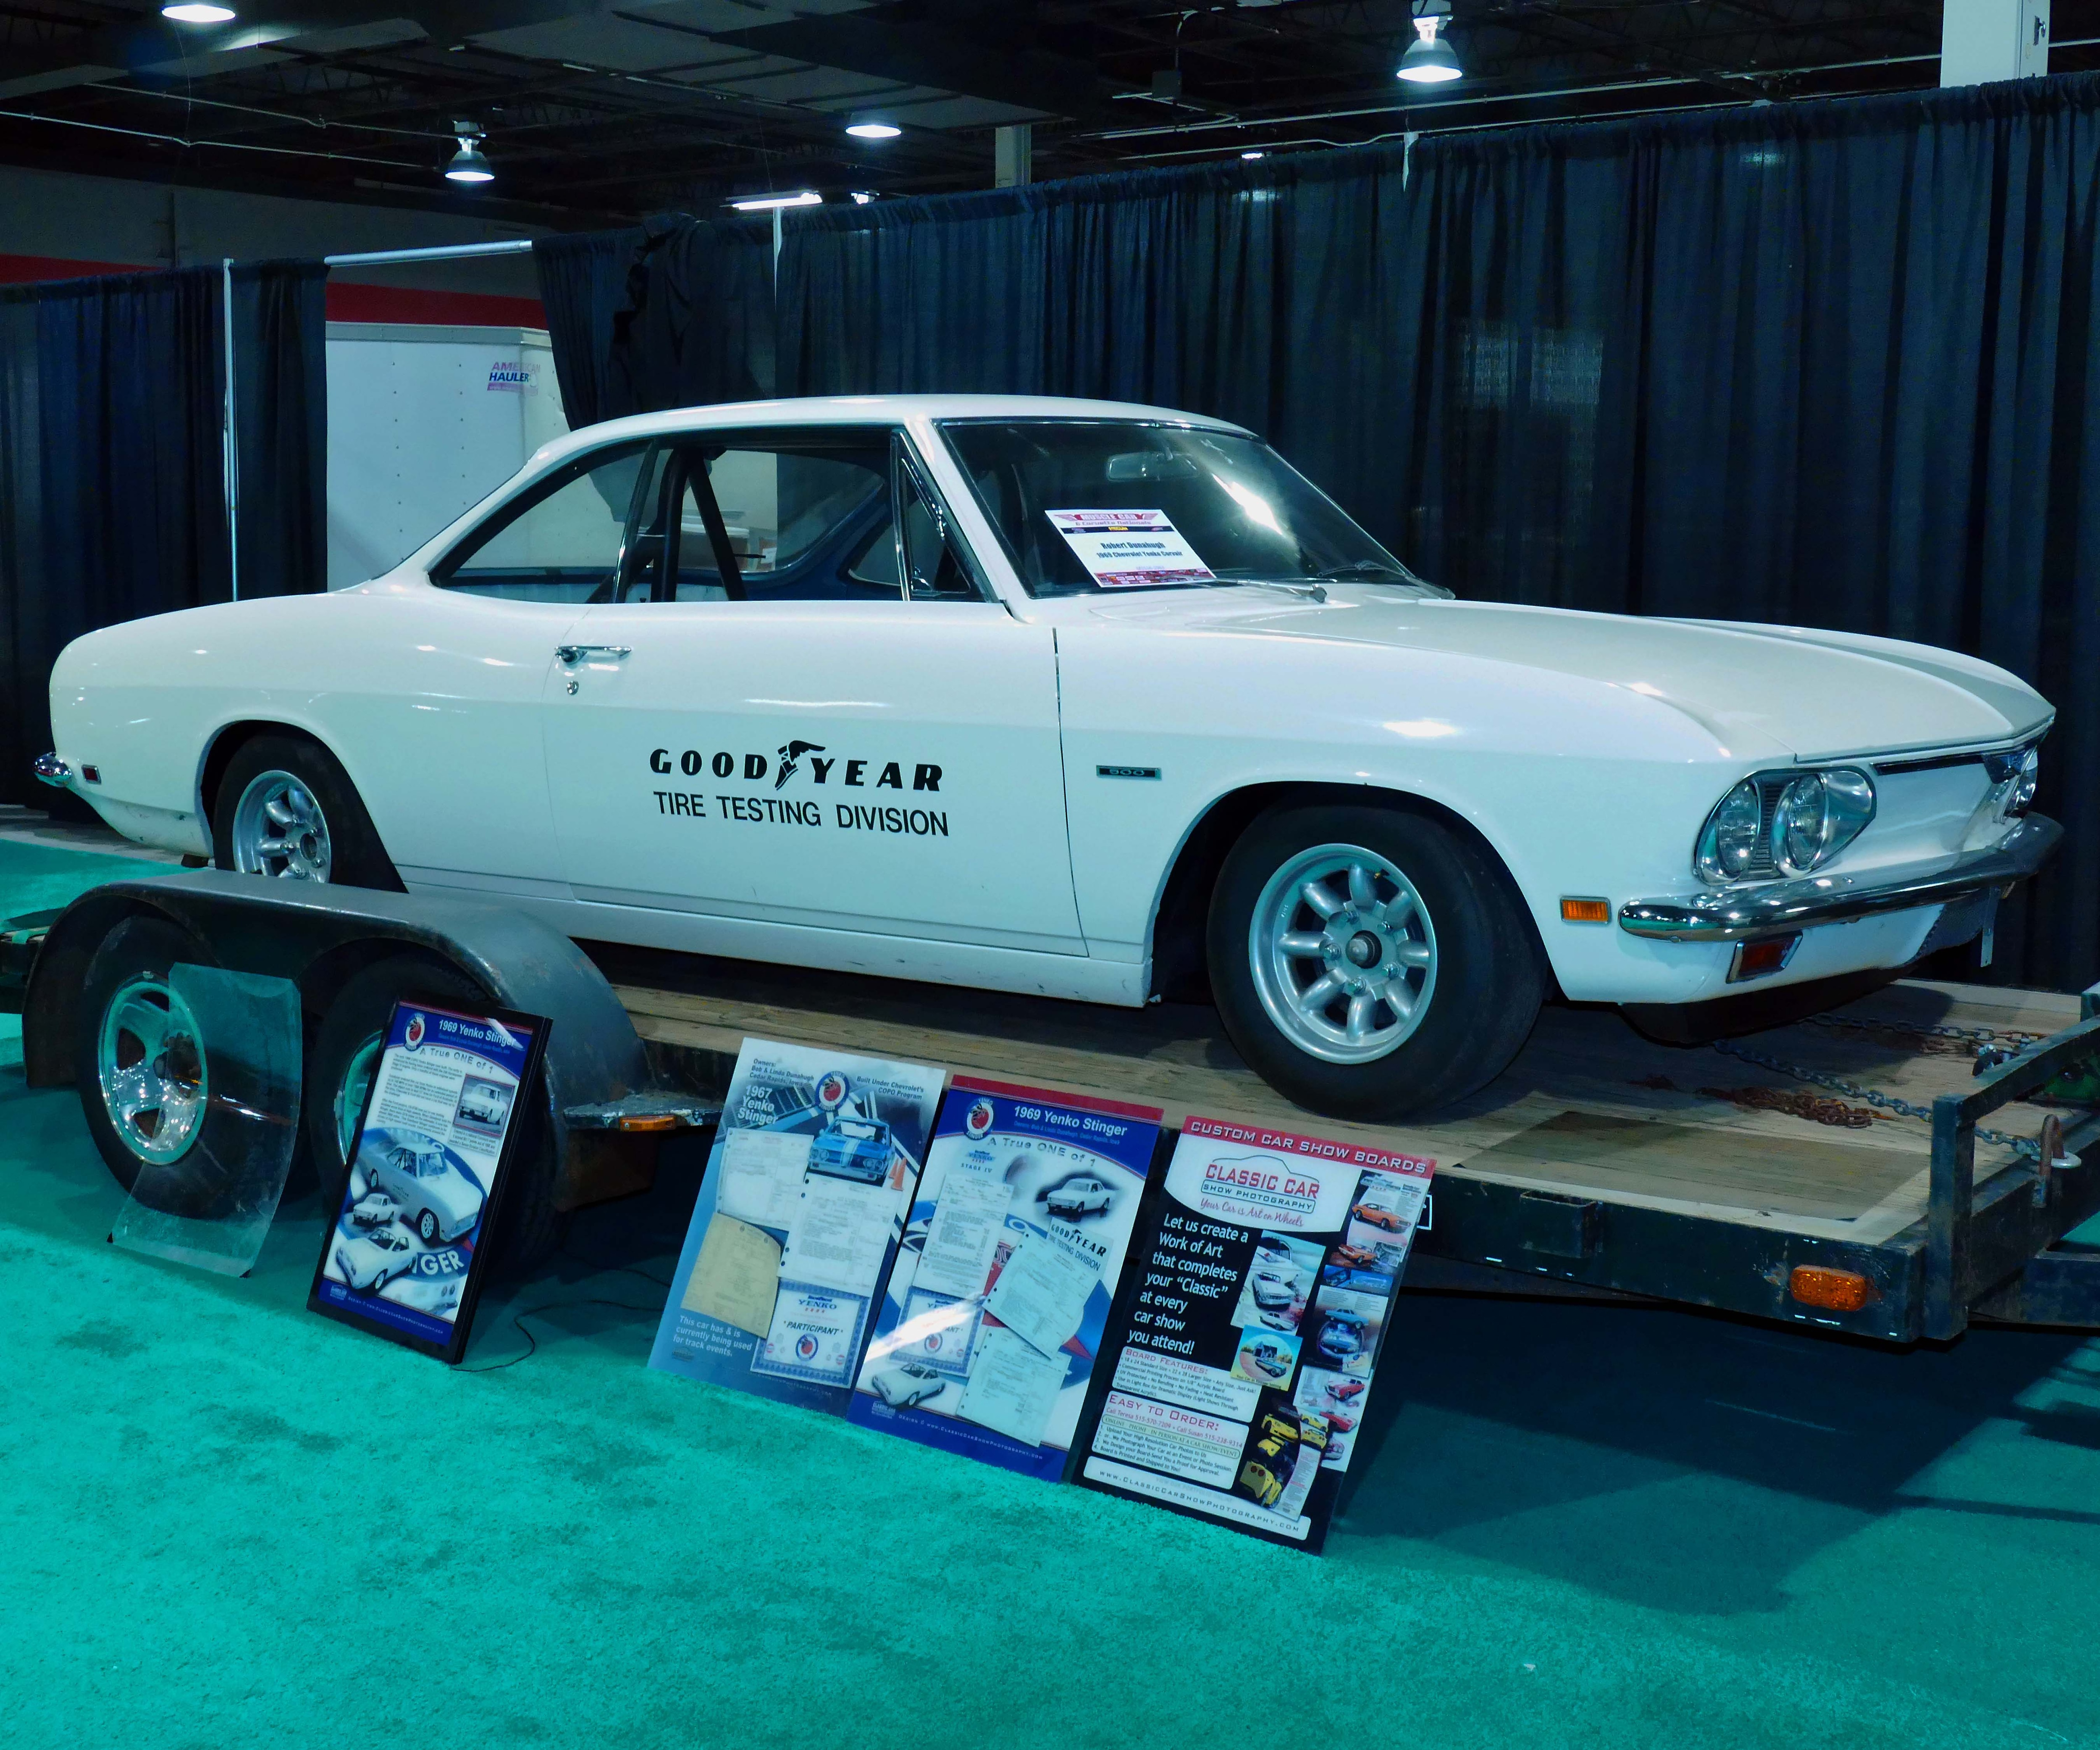 10. Best Vintage Little Car – 1969 Stage IV Stinger – Robert Donahugh Even with rare Pentastar iron everywhere, Stunkard, a diehard Mopar guy, gave his 2016 MCACN celebrity pick to the Corvair of Robert Donahugh. A COPO factory build for the suspension, this is the only Stinger built new by Yenko in 1969, and likely the final one created during the Corvair model's production. The car was special-ordered by Goodyear to do 13-inch 130-mph tire testing for Ford of Australia. Since Ford had nothing that fast domestically wearing so small a tire, Yenko's shop built this non-race-lightened Stage IV package for the tire firm under contract, which then successfully completed its mission. Donahugh also had extensive paperwork from Yenko office manager Donna Mae Mims between both Goodyear corporate and the Yenko shop forces. He still races the car on occasion, and towed it in with a 1978 GMC Royale camper that he and his wife travel the country with.